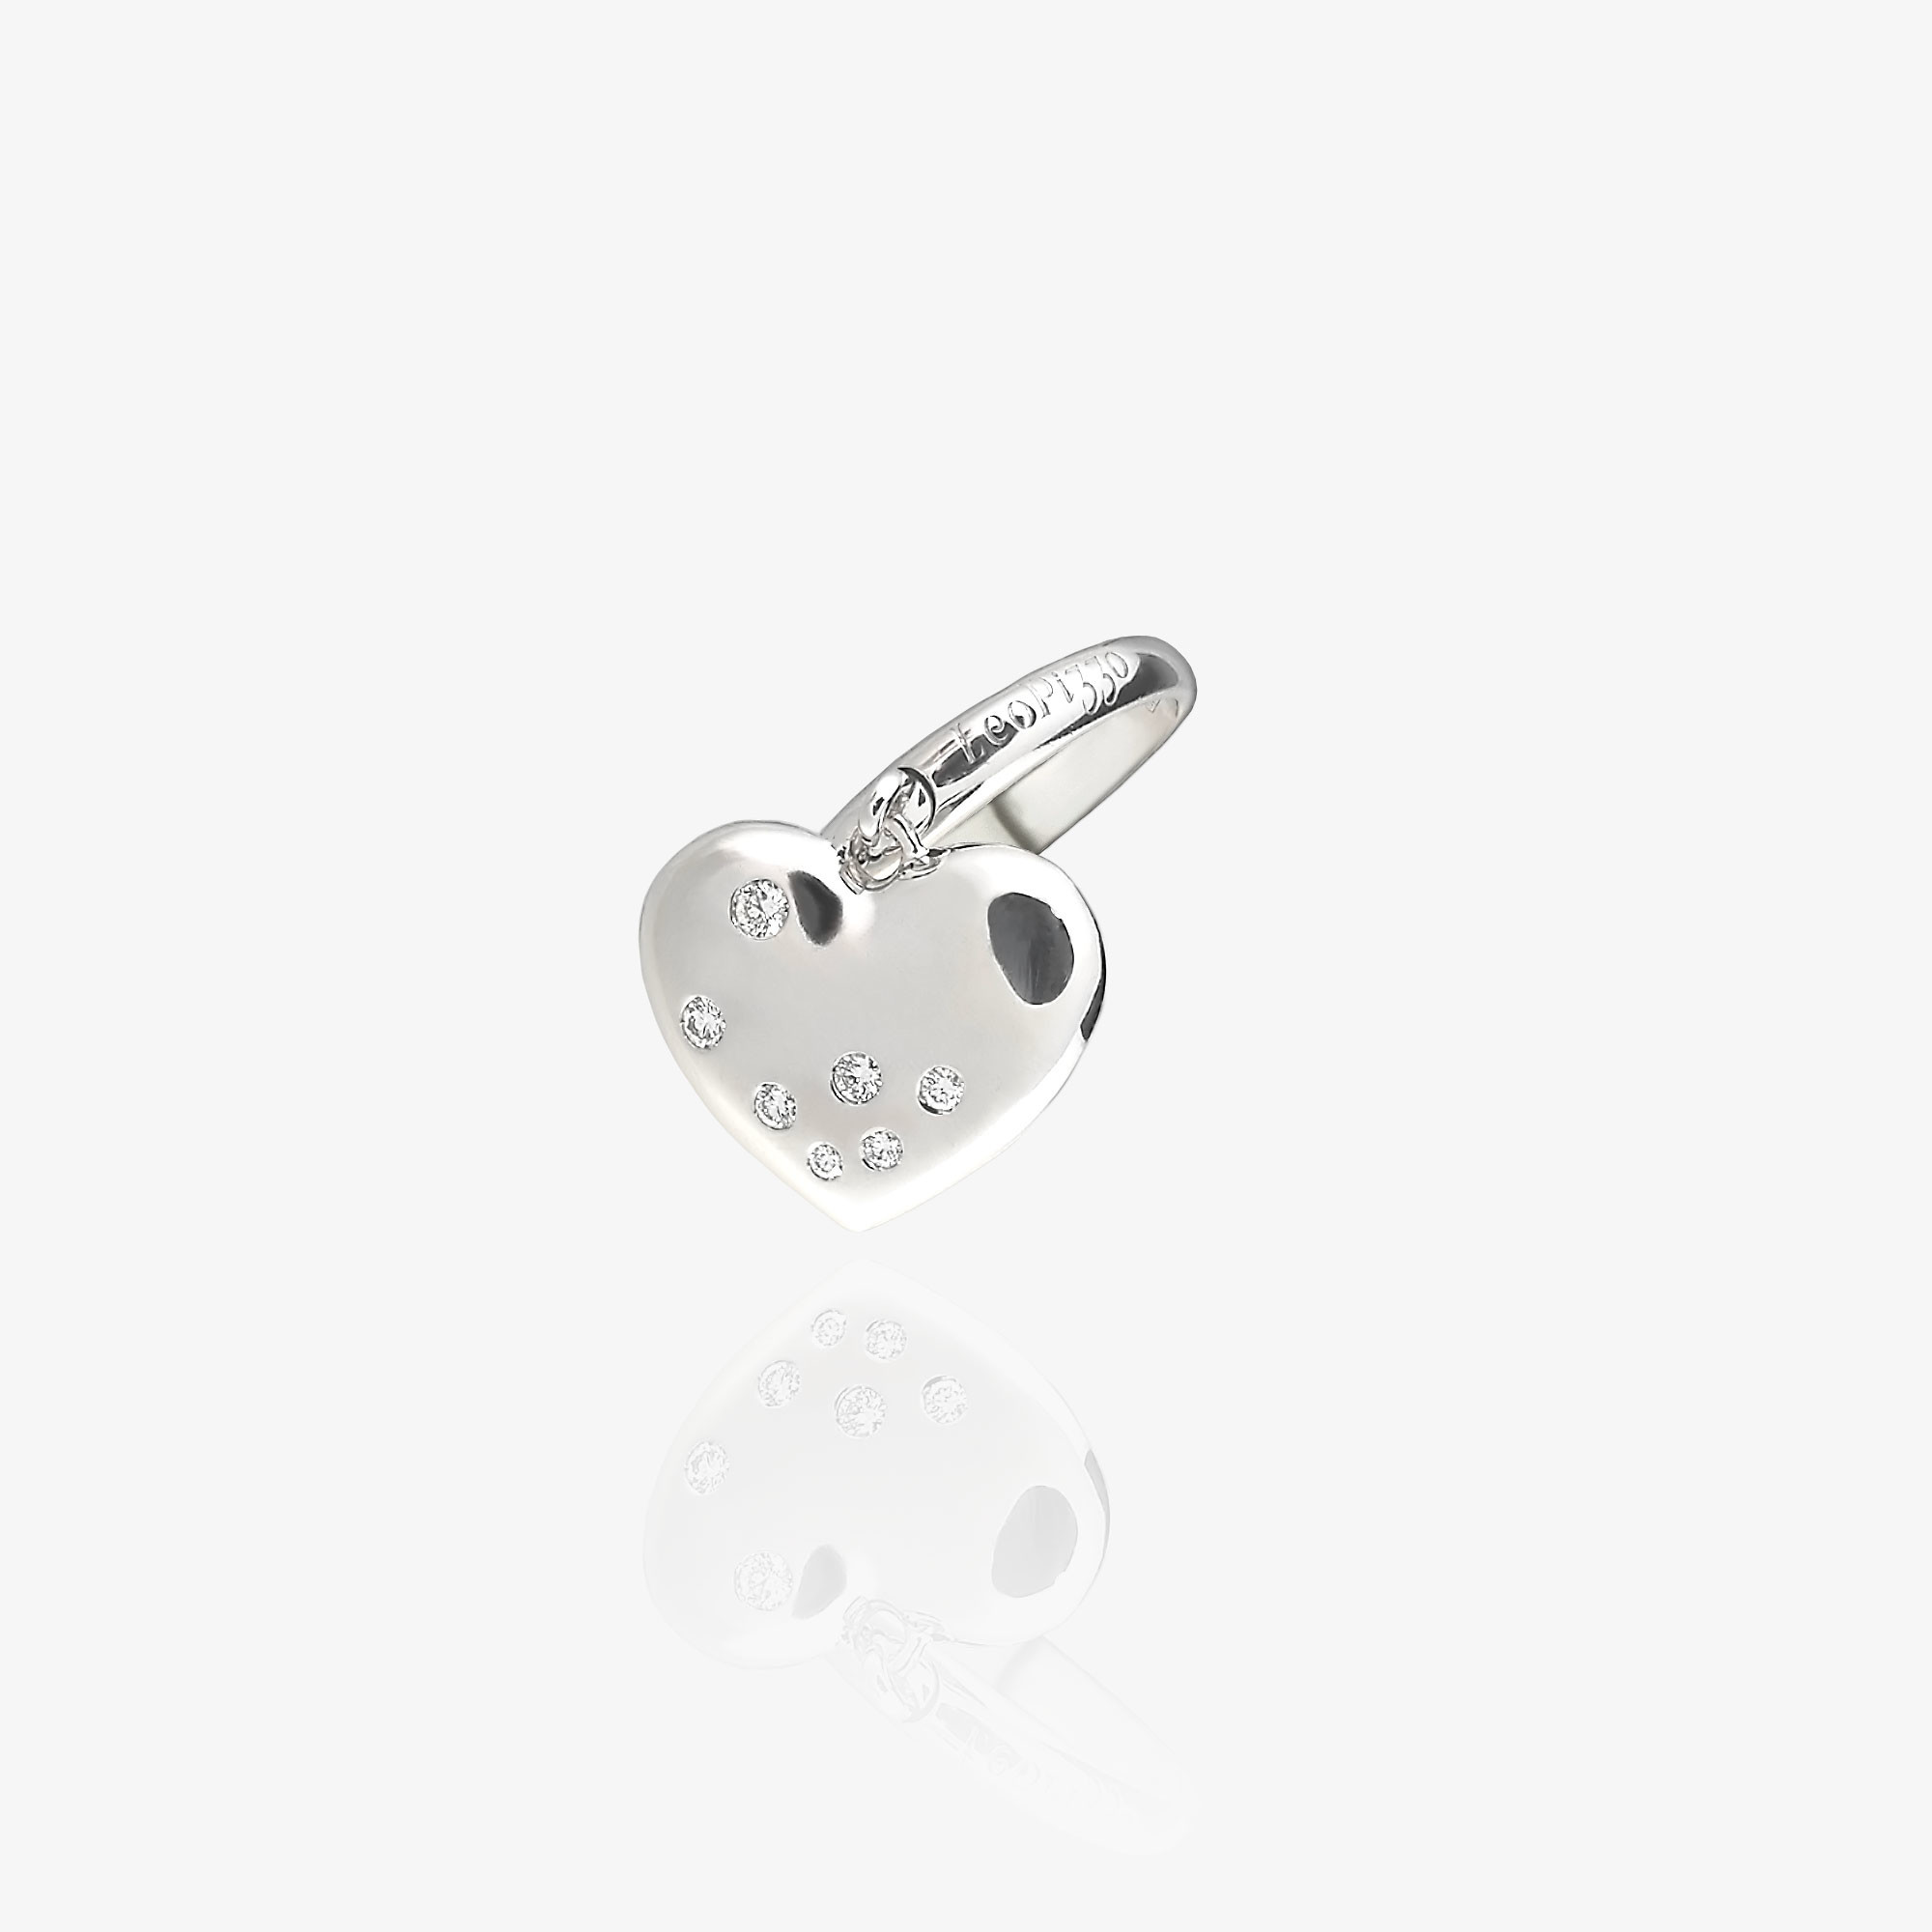 Ring with heart charm